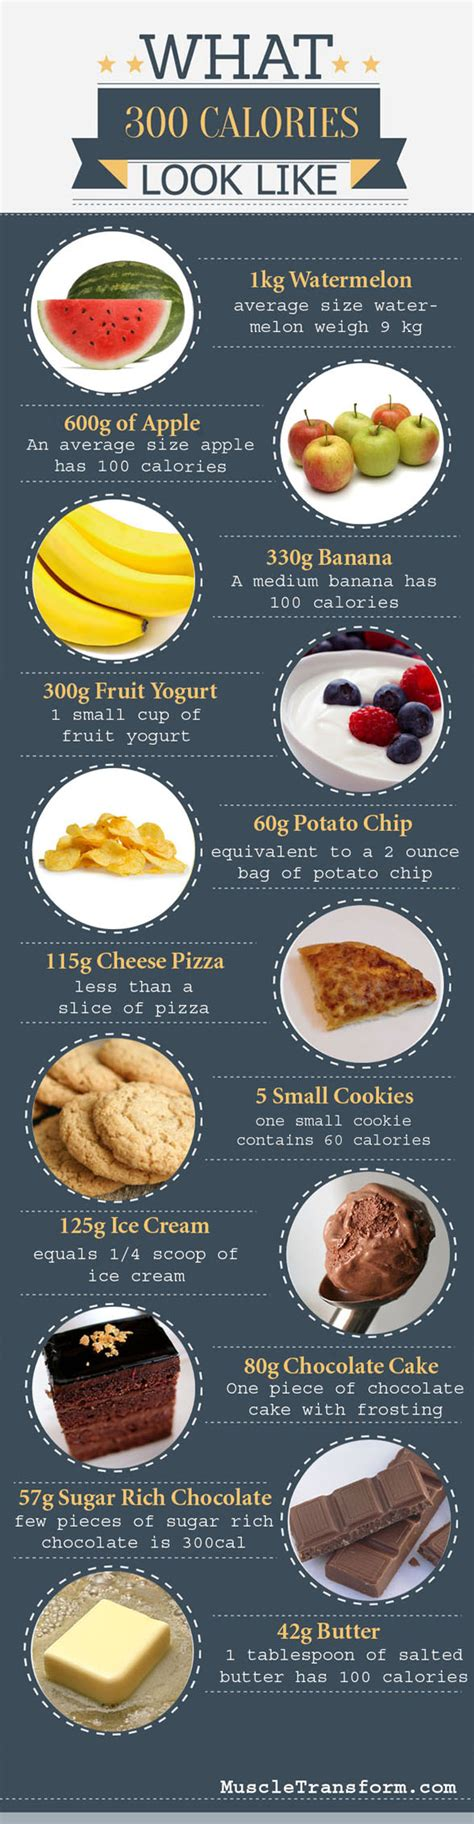 weight loss 300 calories per day 300 calorie meals and snacks low carb foods list weight loss